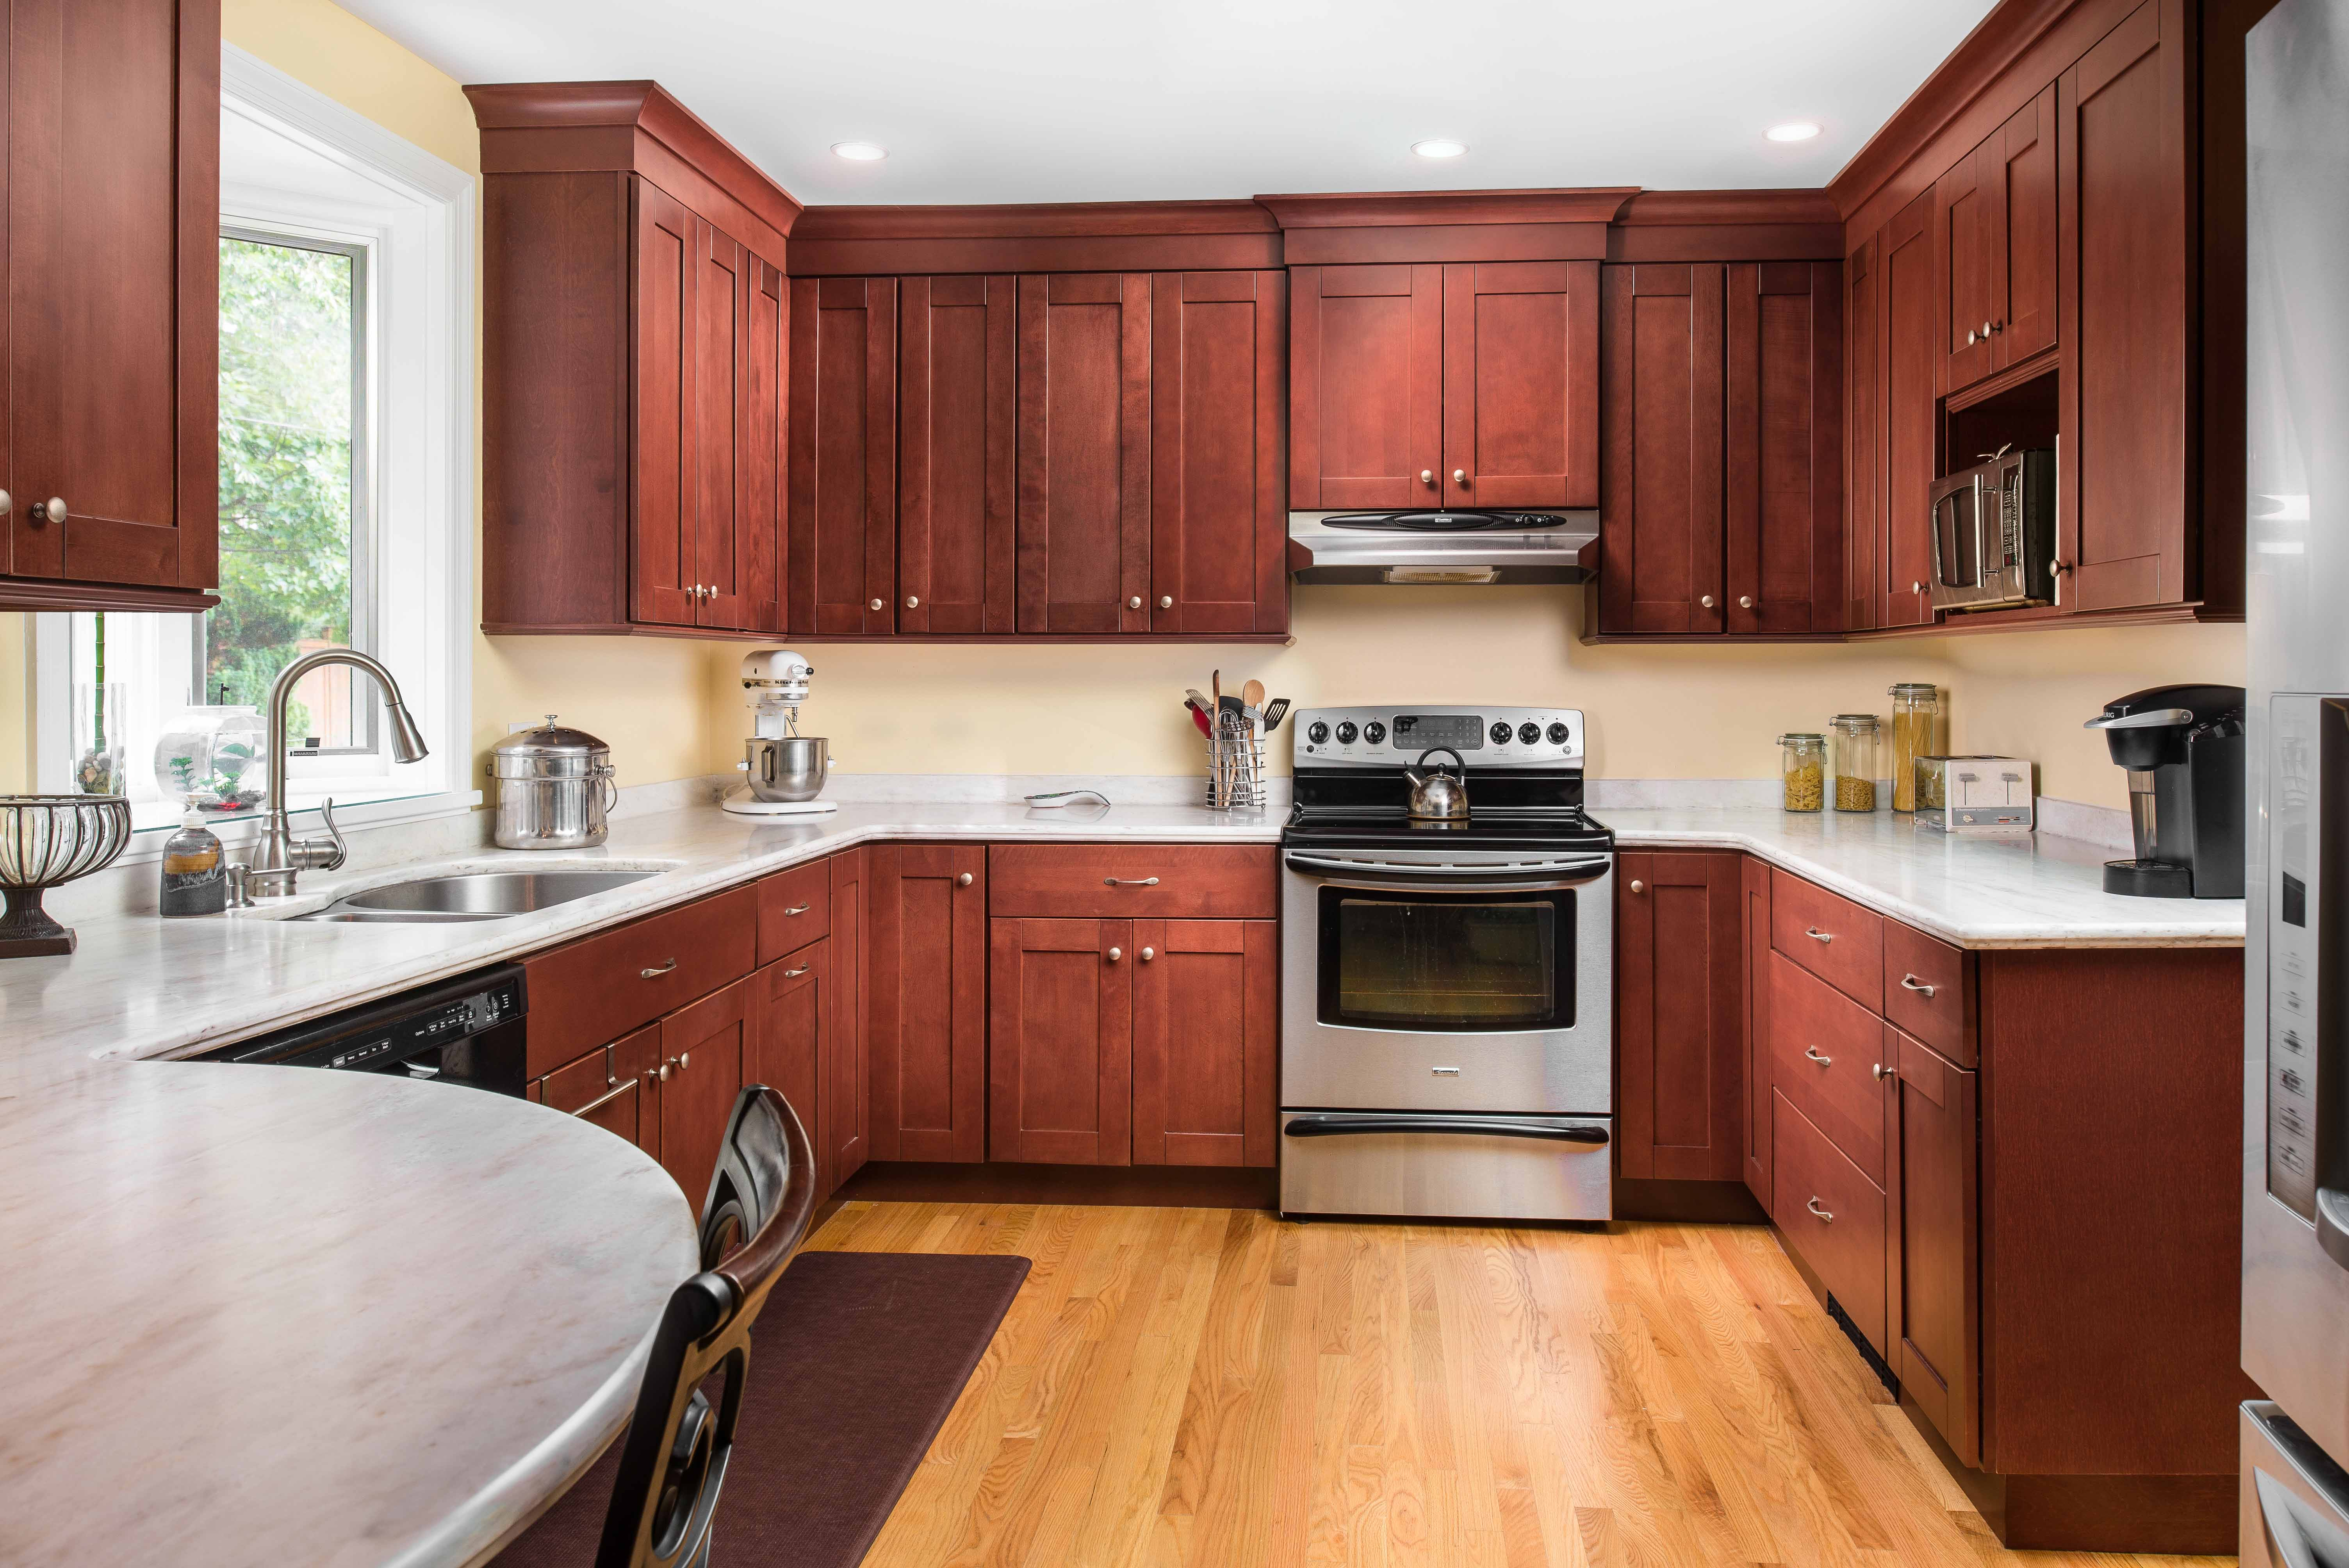 Why shaker style kitchen cabinets never go out of style